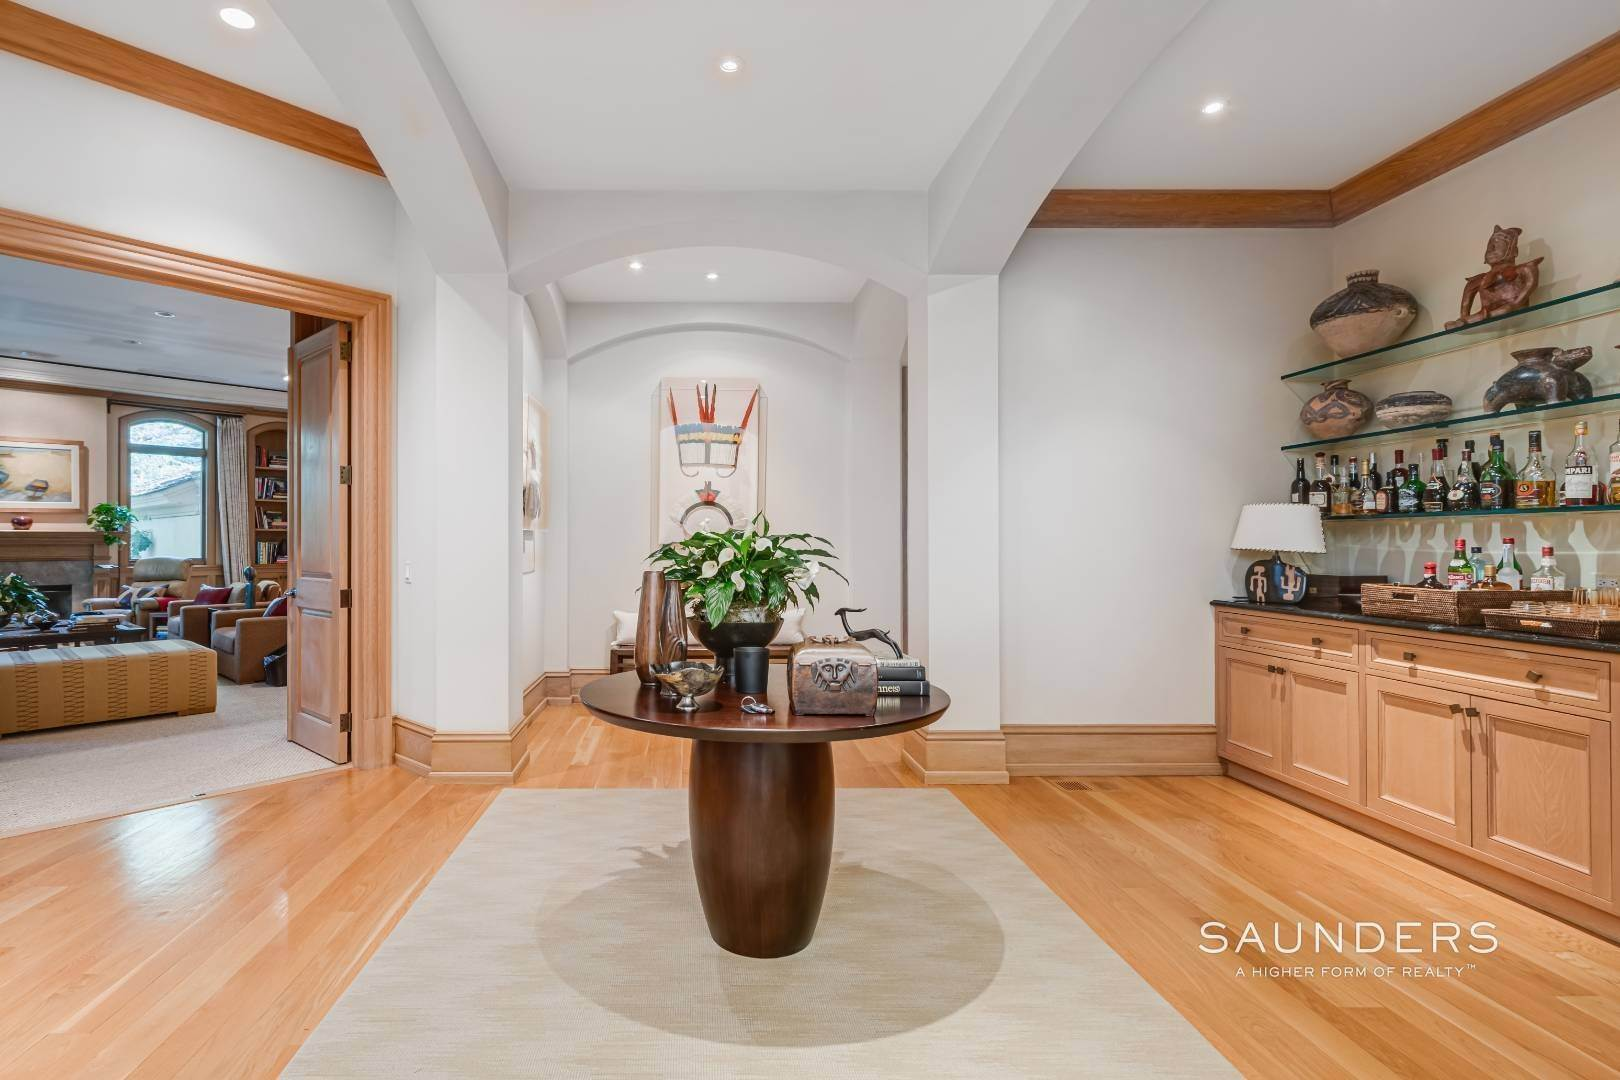 5. Single Family Homes for Sale at Secluded Bridgehampton Waterfront Estate 160 & 164 Trelawney Road, Bridgehampton, Southampton Town, NY 11932